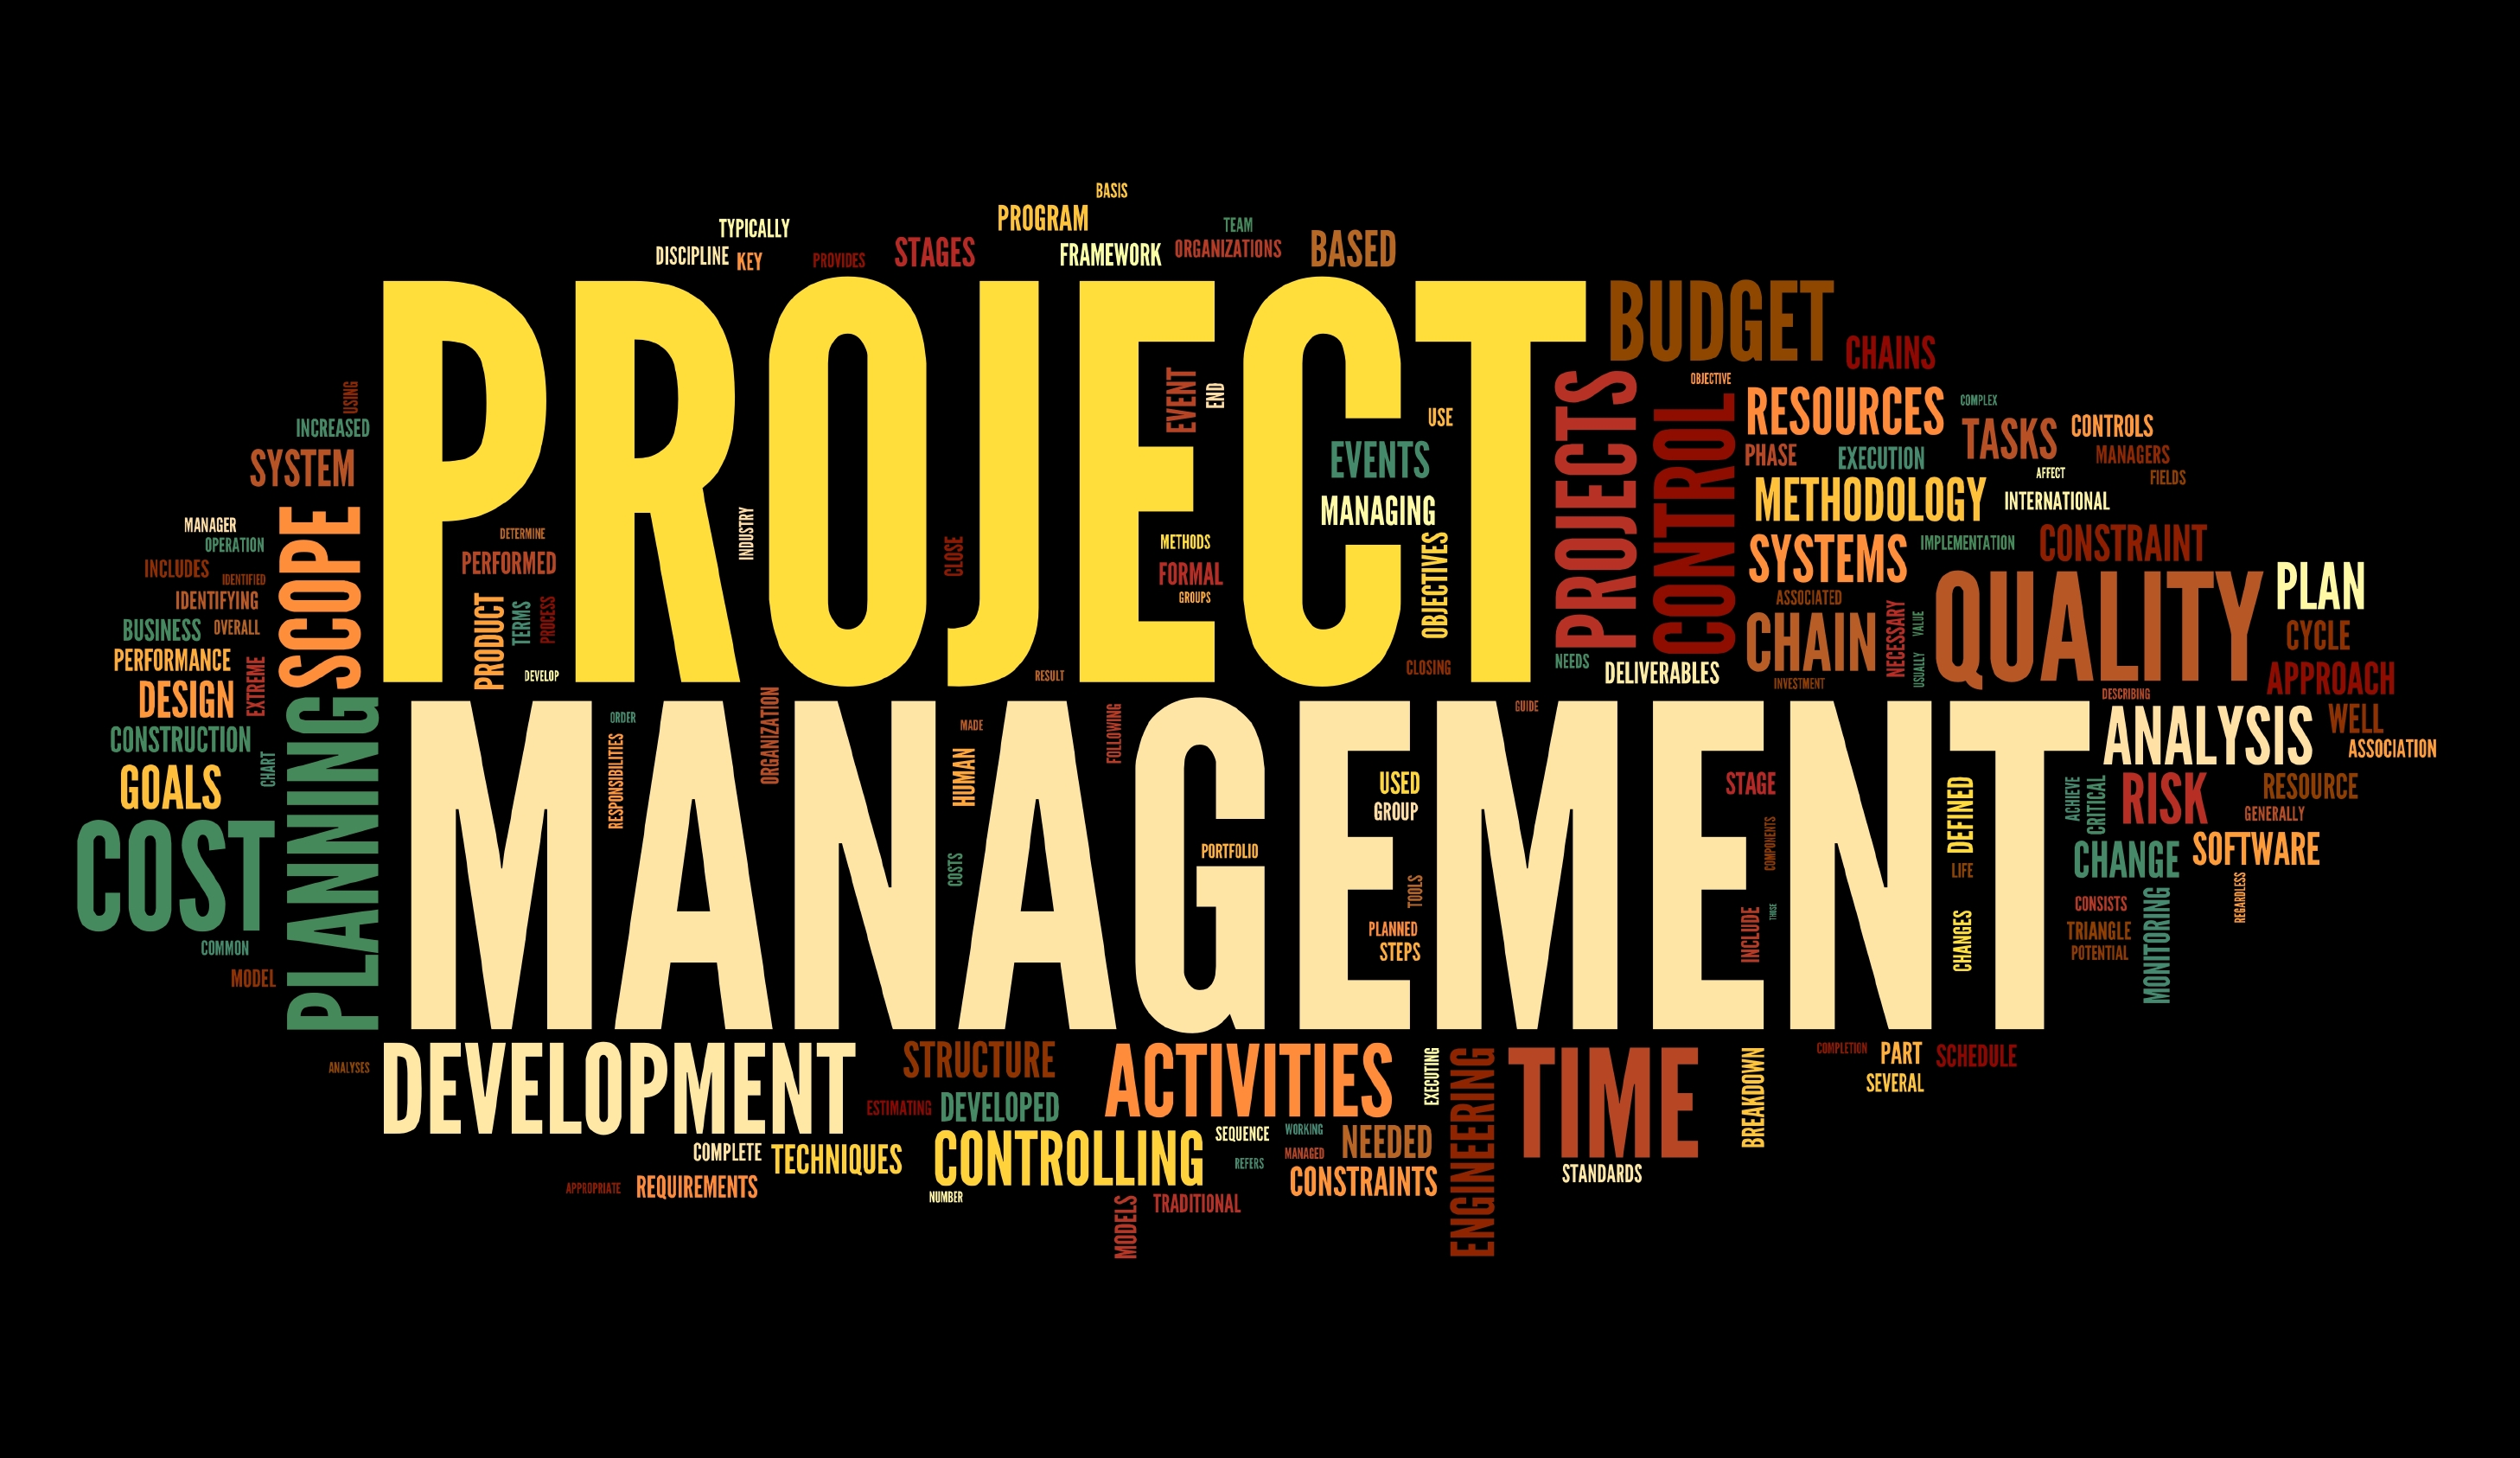 Project management in tag cloud